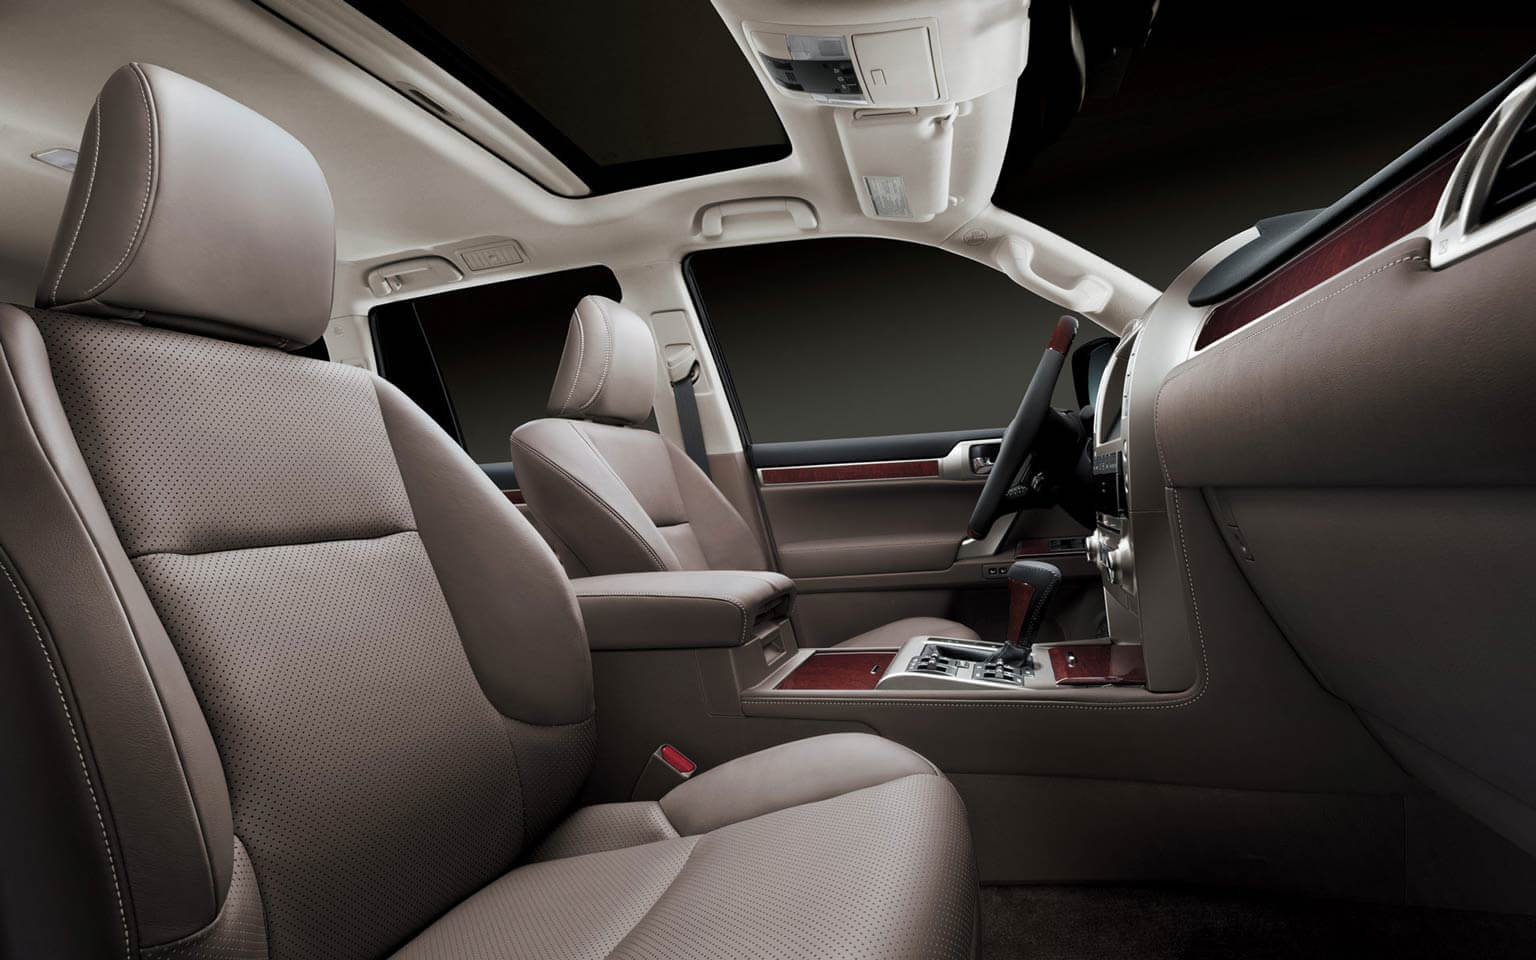 GX 460 Executive Package in Sepia Premium Leather